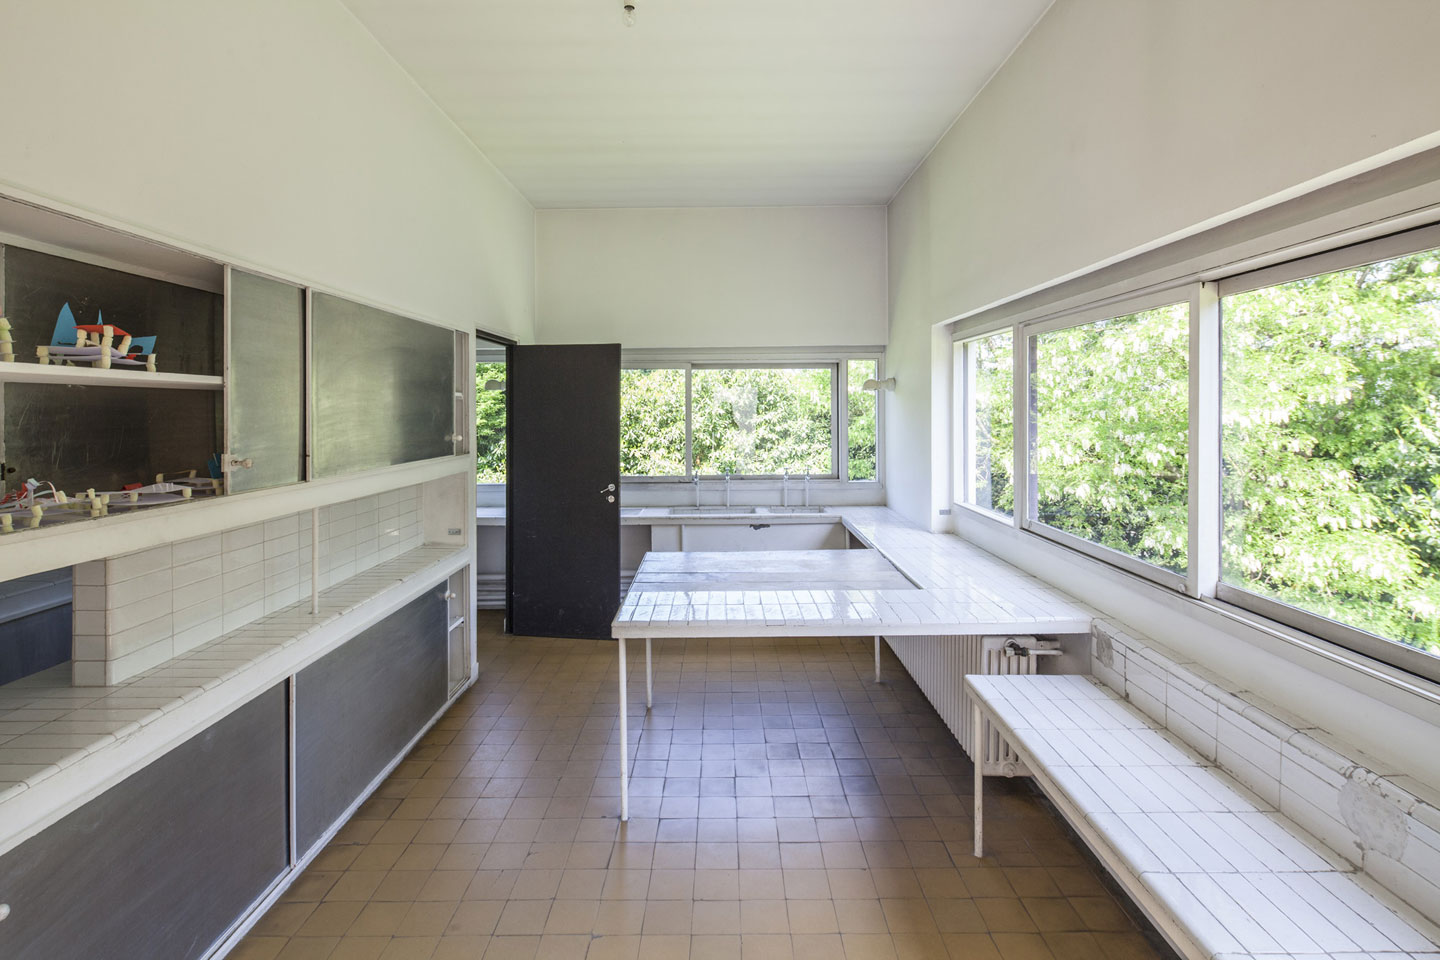 villa savoye le corbusier 39 s machine of inhabit metalocus. Black Bedroom Furniture Sets. Home Design Ideas